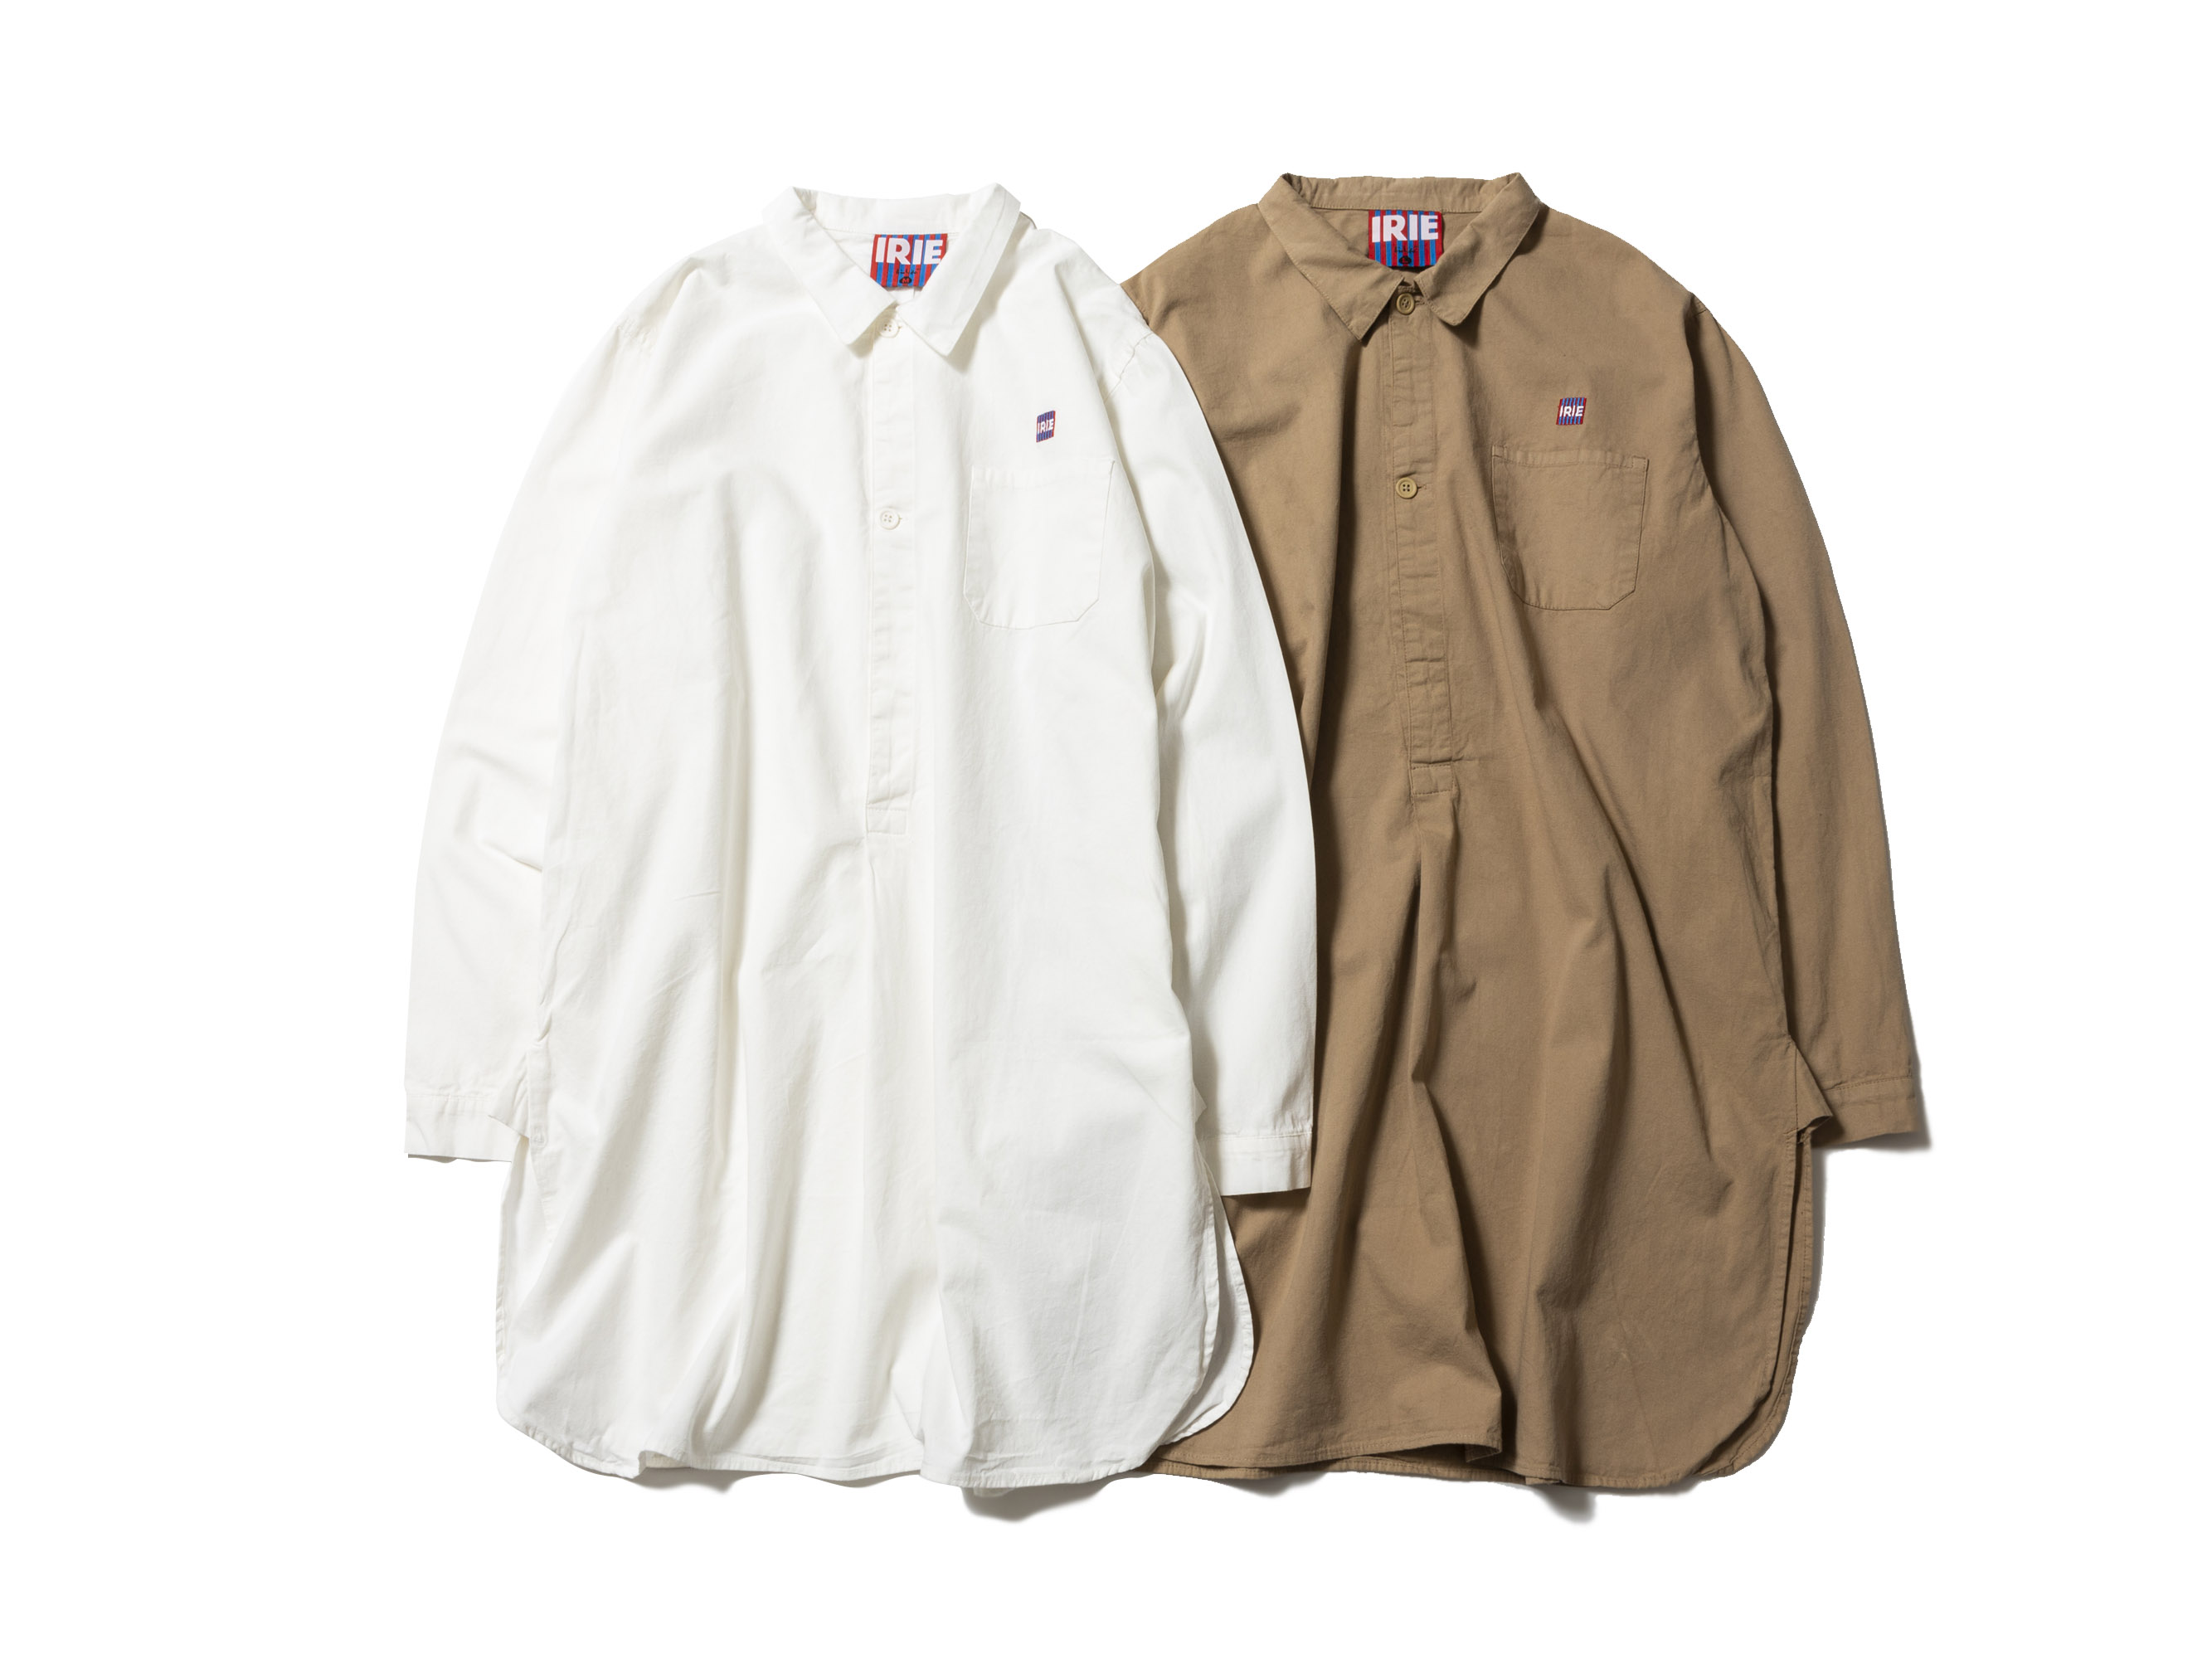 【20% OFF】PULL OVER LONG SHIRT -IRIE by irielife-